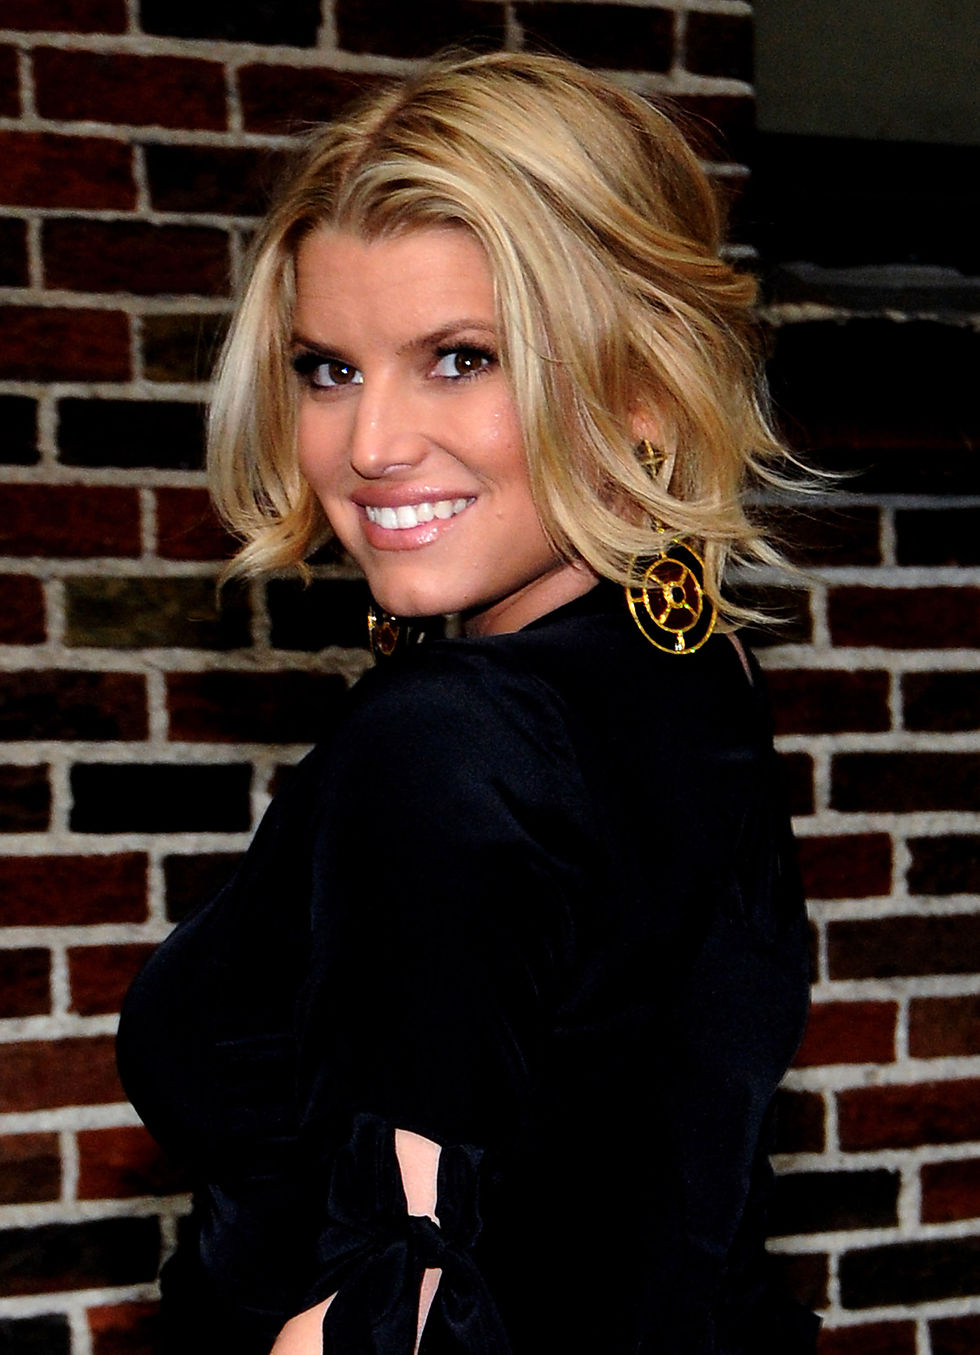 jessica-simpson-at-the-late-show-with-david-letterman-in-new-york-city-16